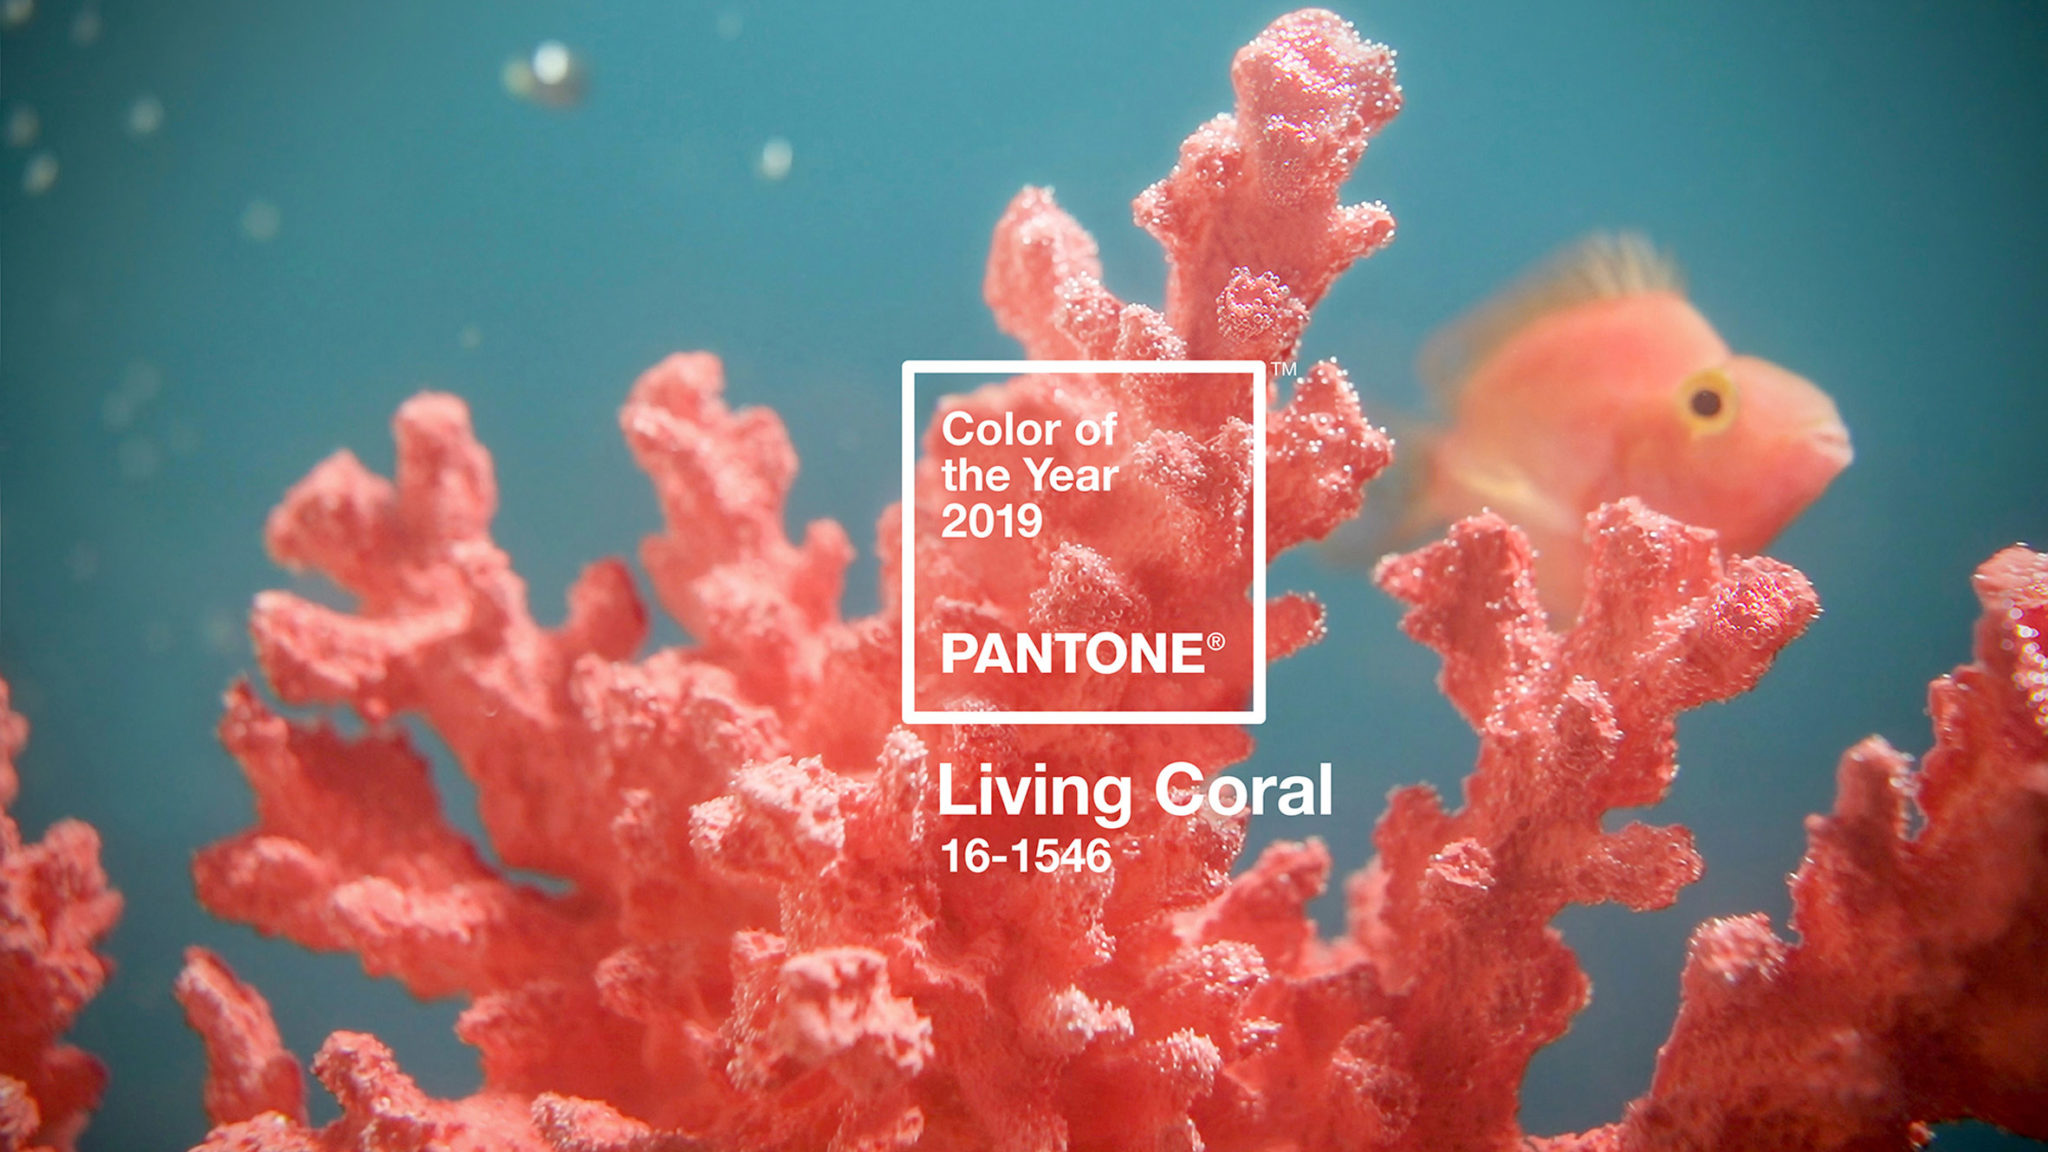 The official 2019 colour is not just about a charming and warm pink. Pantone official describes the colour as warm and welcoming, but versatile and life-affirming. As per every year, the election of the Pantone colour affects in a direct way to art & design, flooding from street fashion and haute couture, to interior design and decoration. This year´s Pantone its surprisingly the colour of the underwater reefs hanging on for dear life and the sky at dusk. A bright and powerful colour that has a great importance in the natural world. Where the natural resources as the coral are in serious danger of disappearing. But this neon bright saturated tone is also a great reflection of the current society, full of social media leaks and with a high digital impact. An artificial universe where the tone has a big presence too. Living Coral is a beautiful and vibrant colour that shows such opposing ideas and realities. Choosing it as 2019 colour of the year, Pantone continues with the overwhelming trend of distinguishing a high saturated tone with multiple meanings. The commencing 2019 will be a colour explosion coming right after the 2018 Ultraviolet and 2016 Greenery tones.